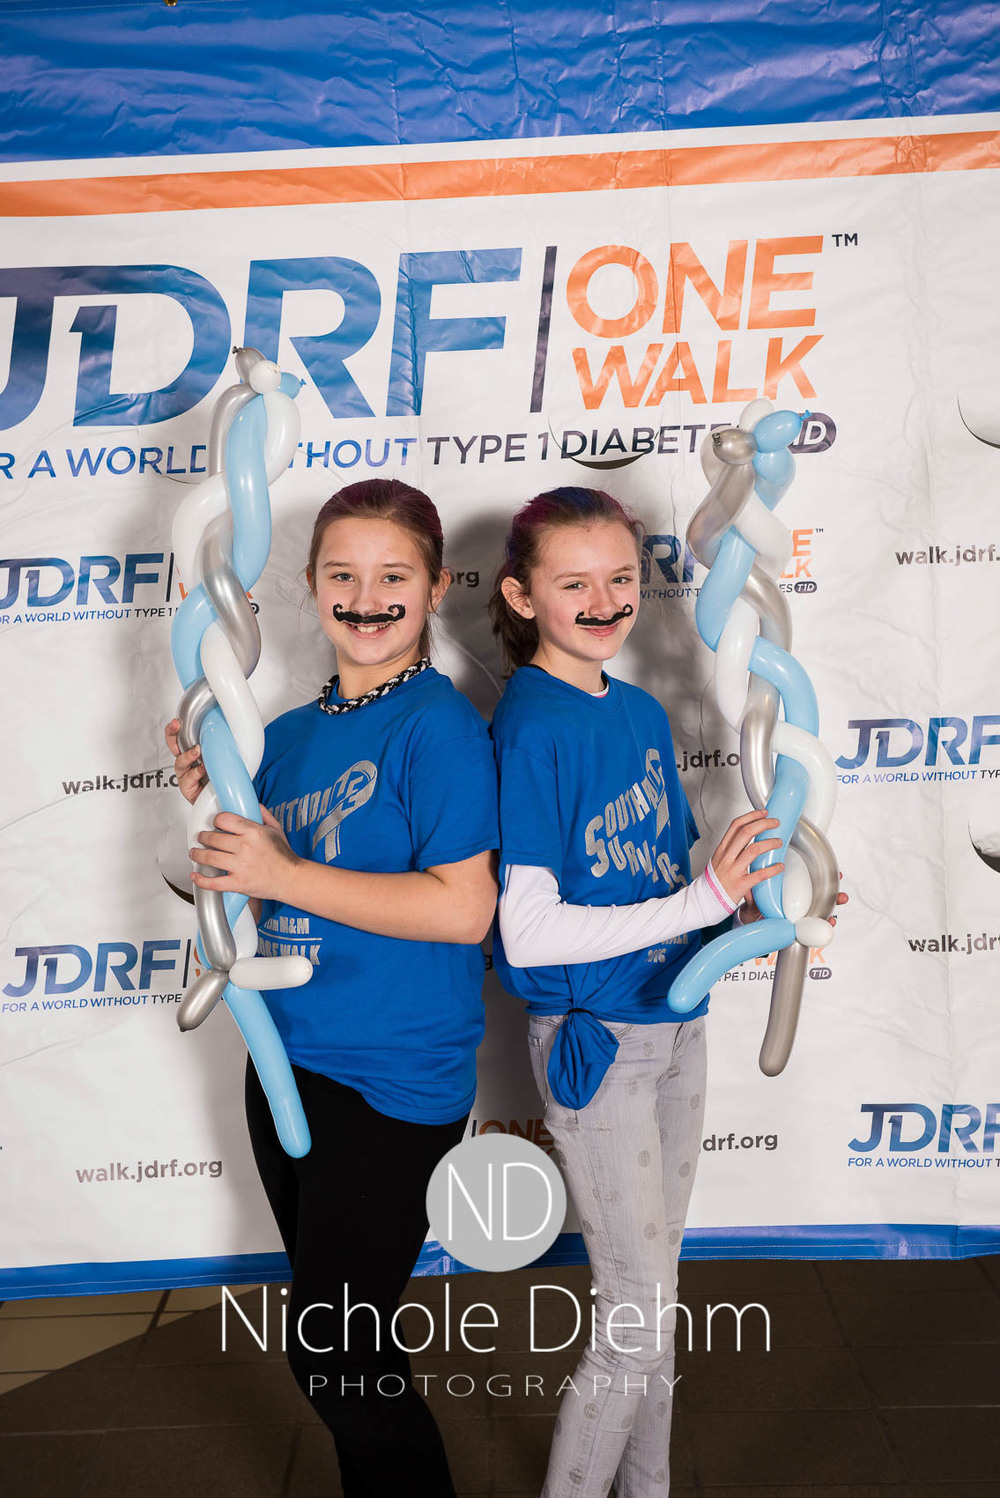 Nichole Diehm Photography JDRF One walk diabetes Crossroads Mall Februrary 2016-14.jpg